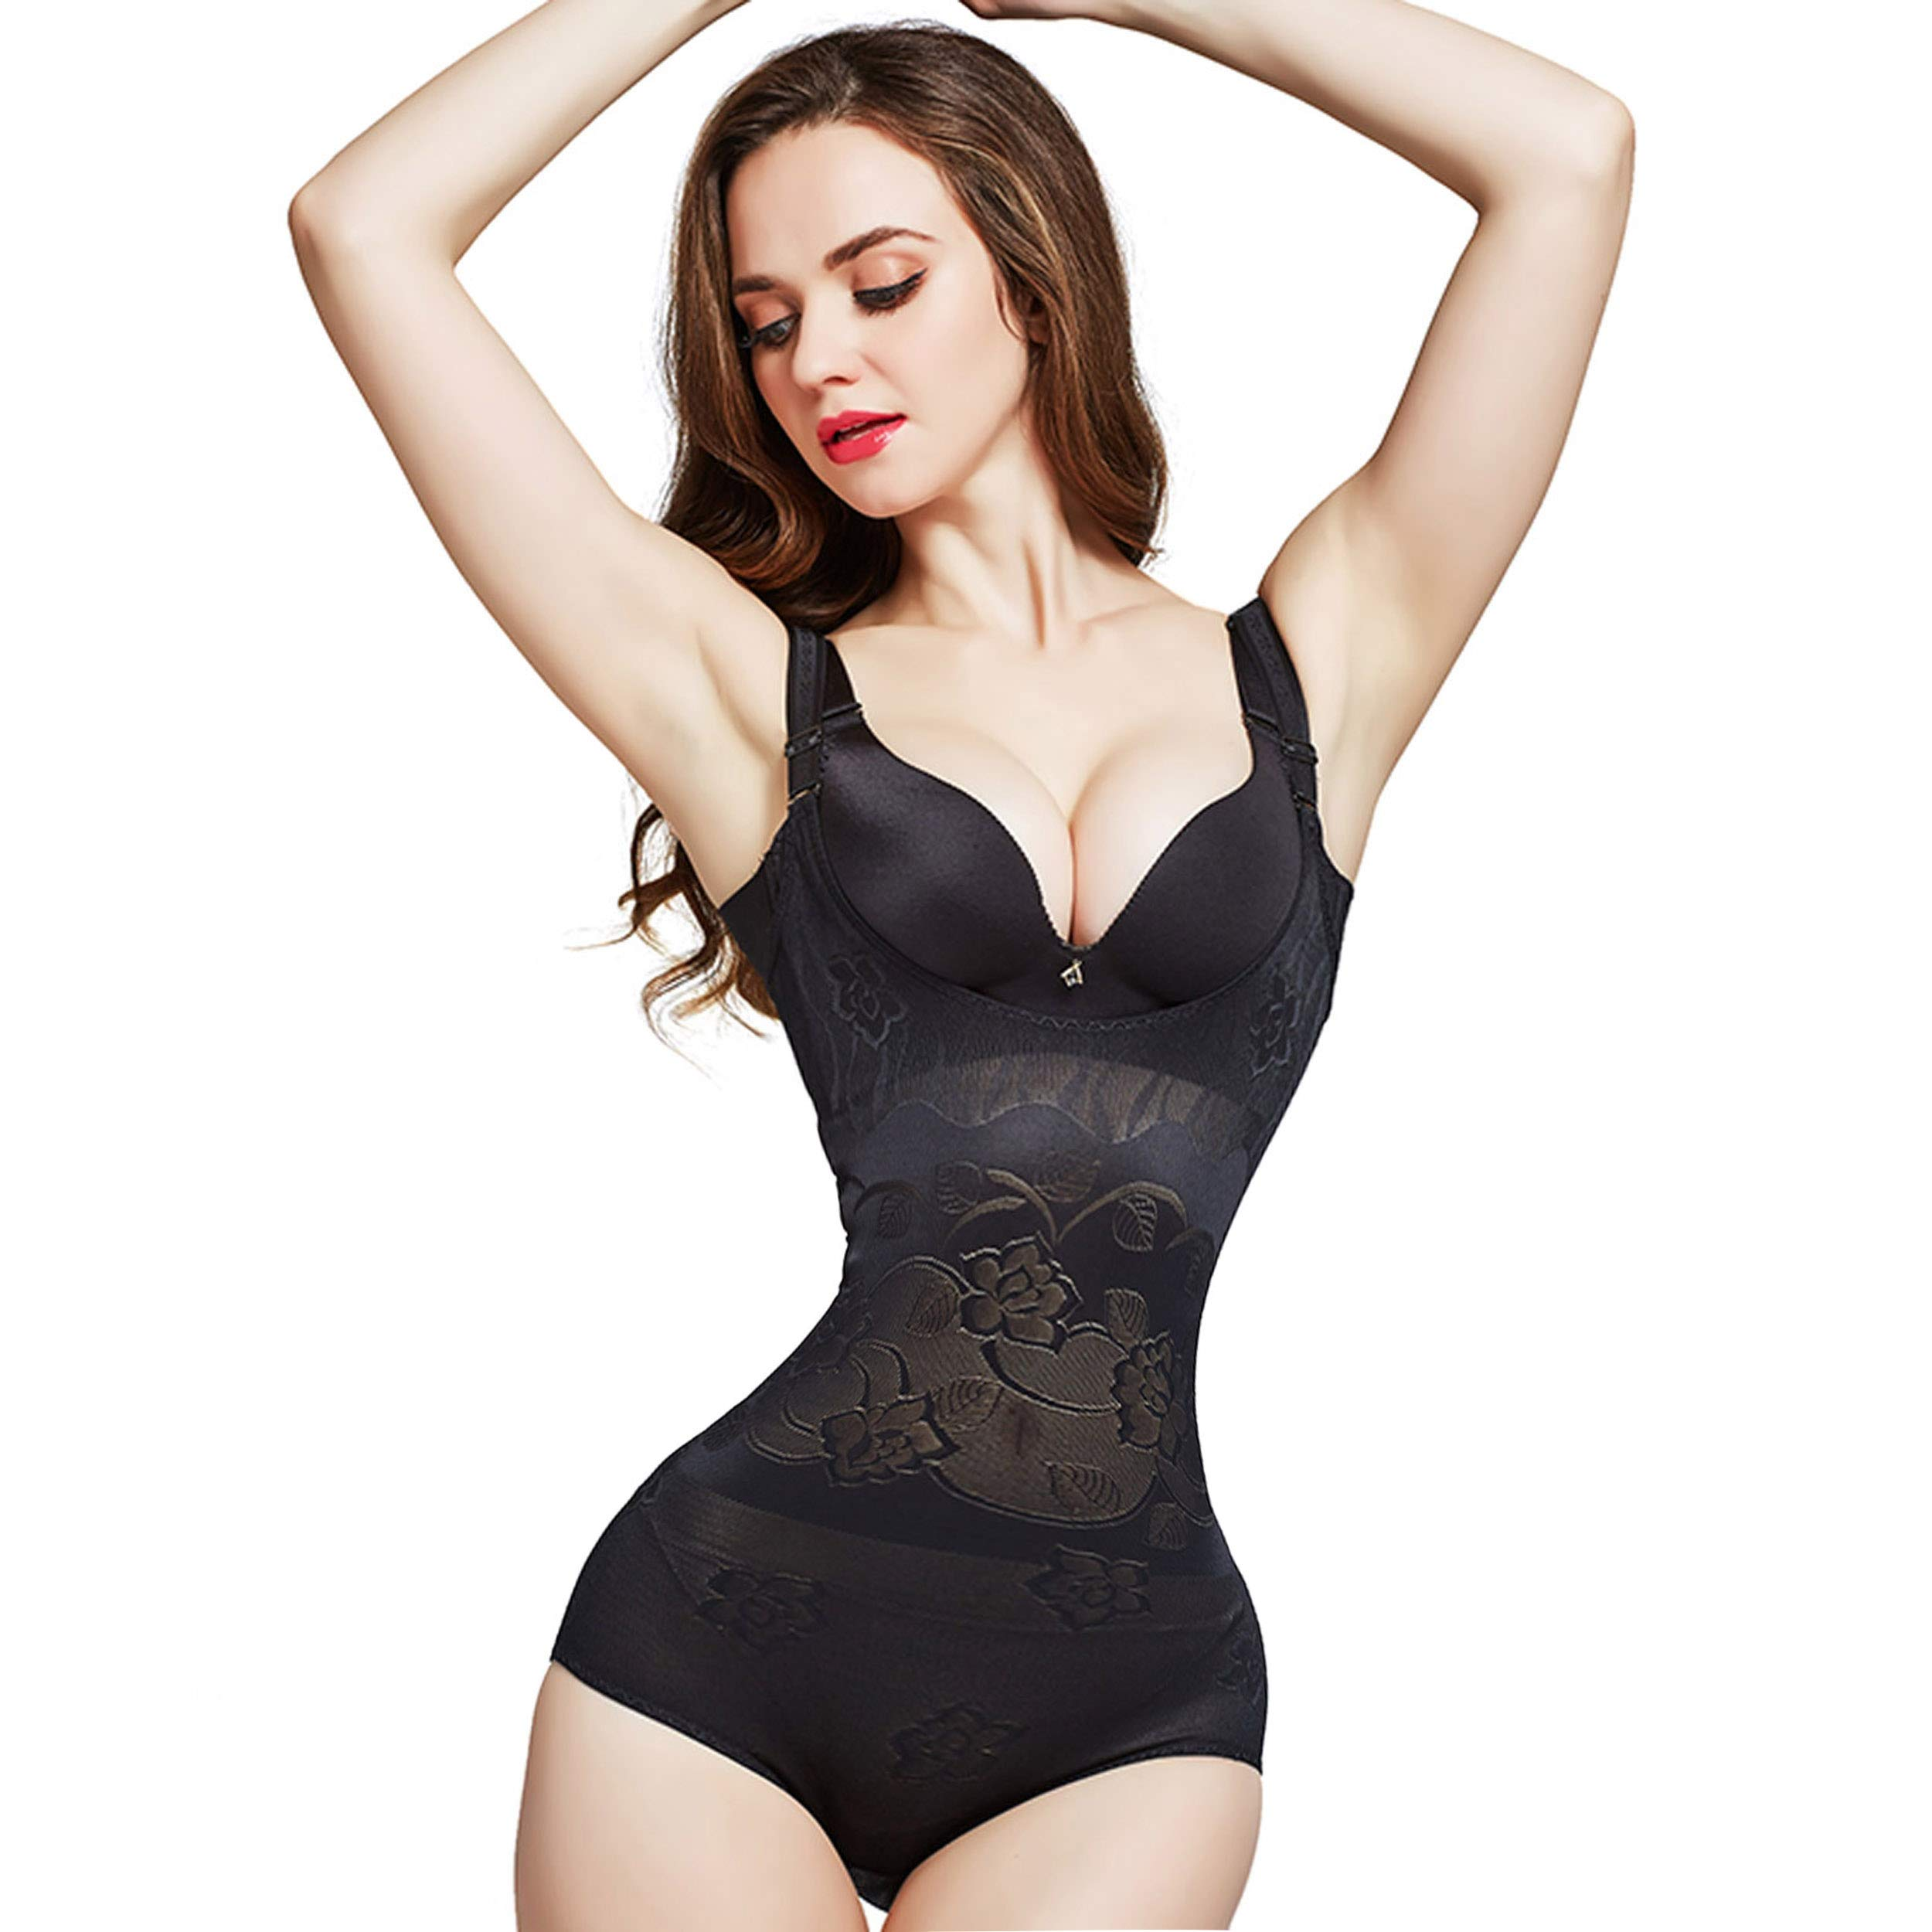 Queenral Women's Shapewear Open Bust Body Briefer Slimmer Firm Body Shaper